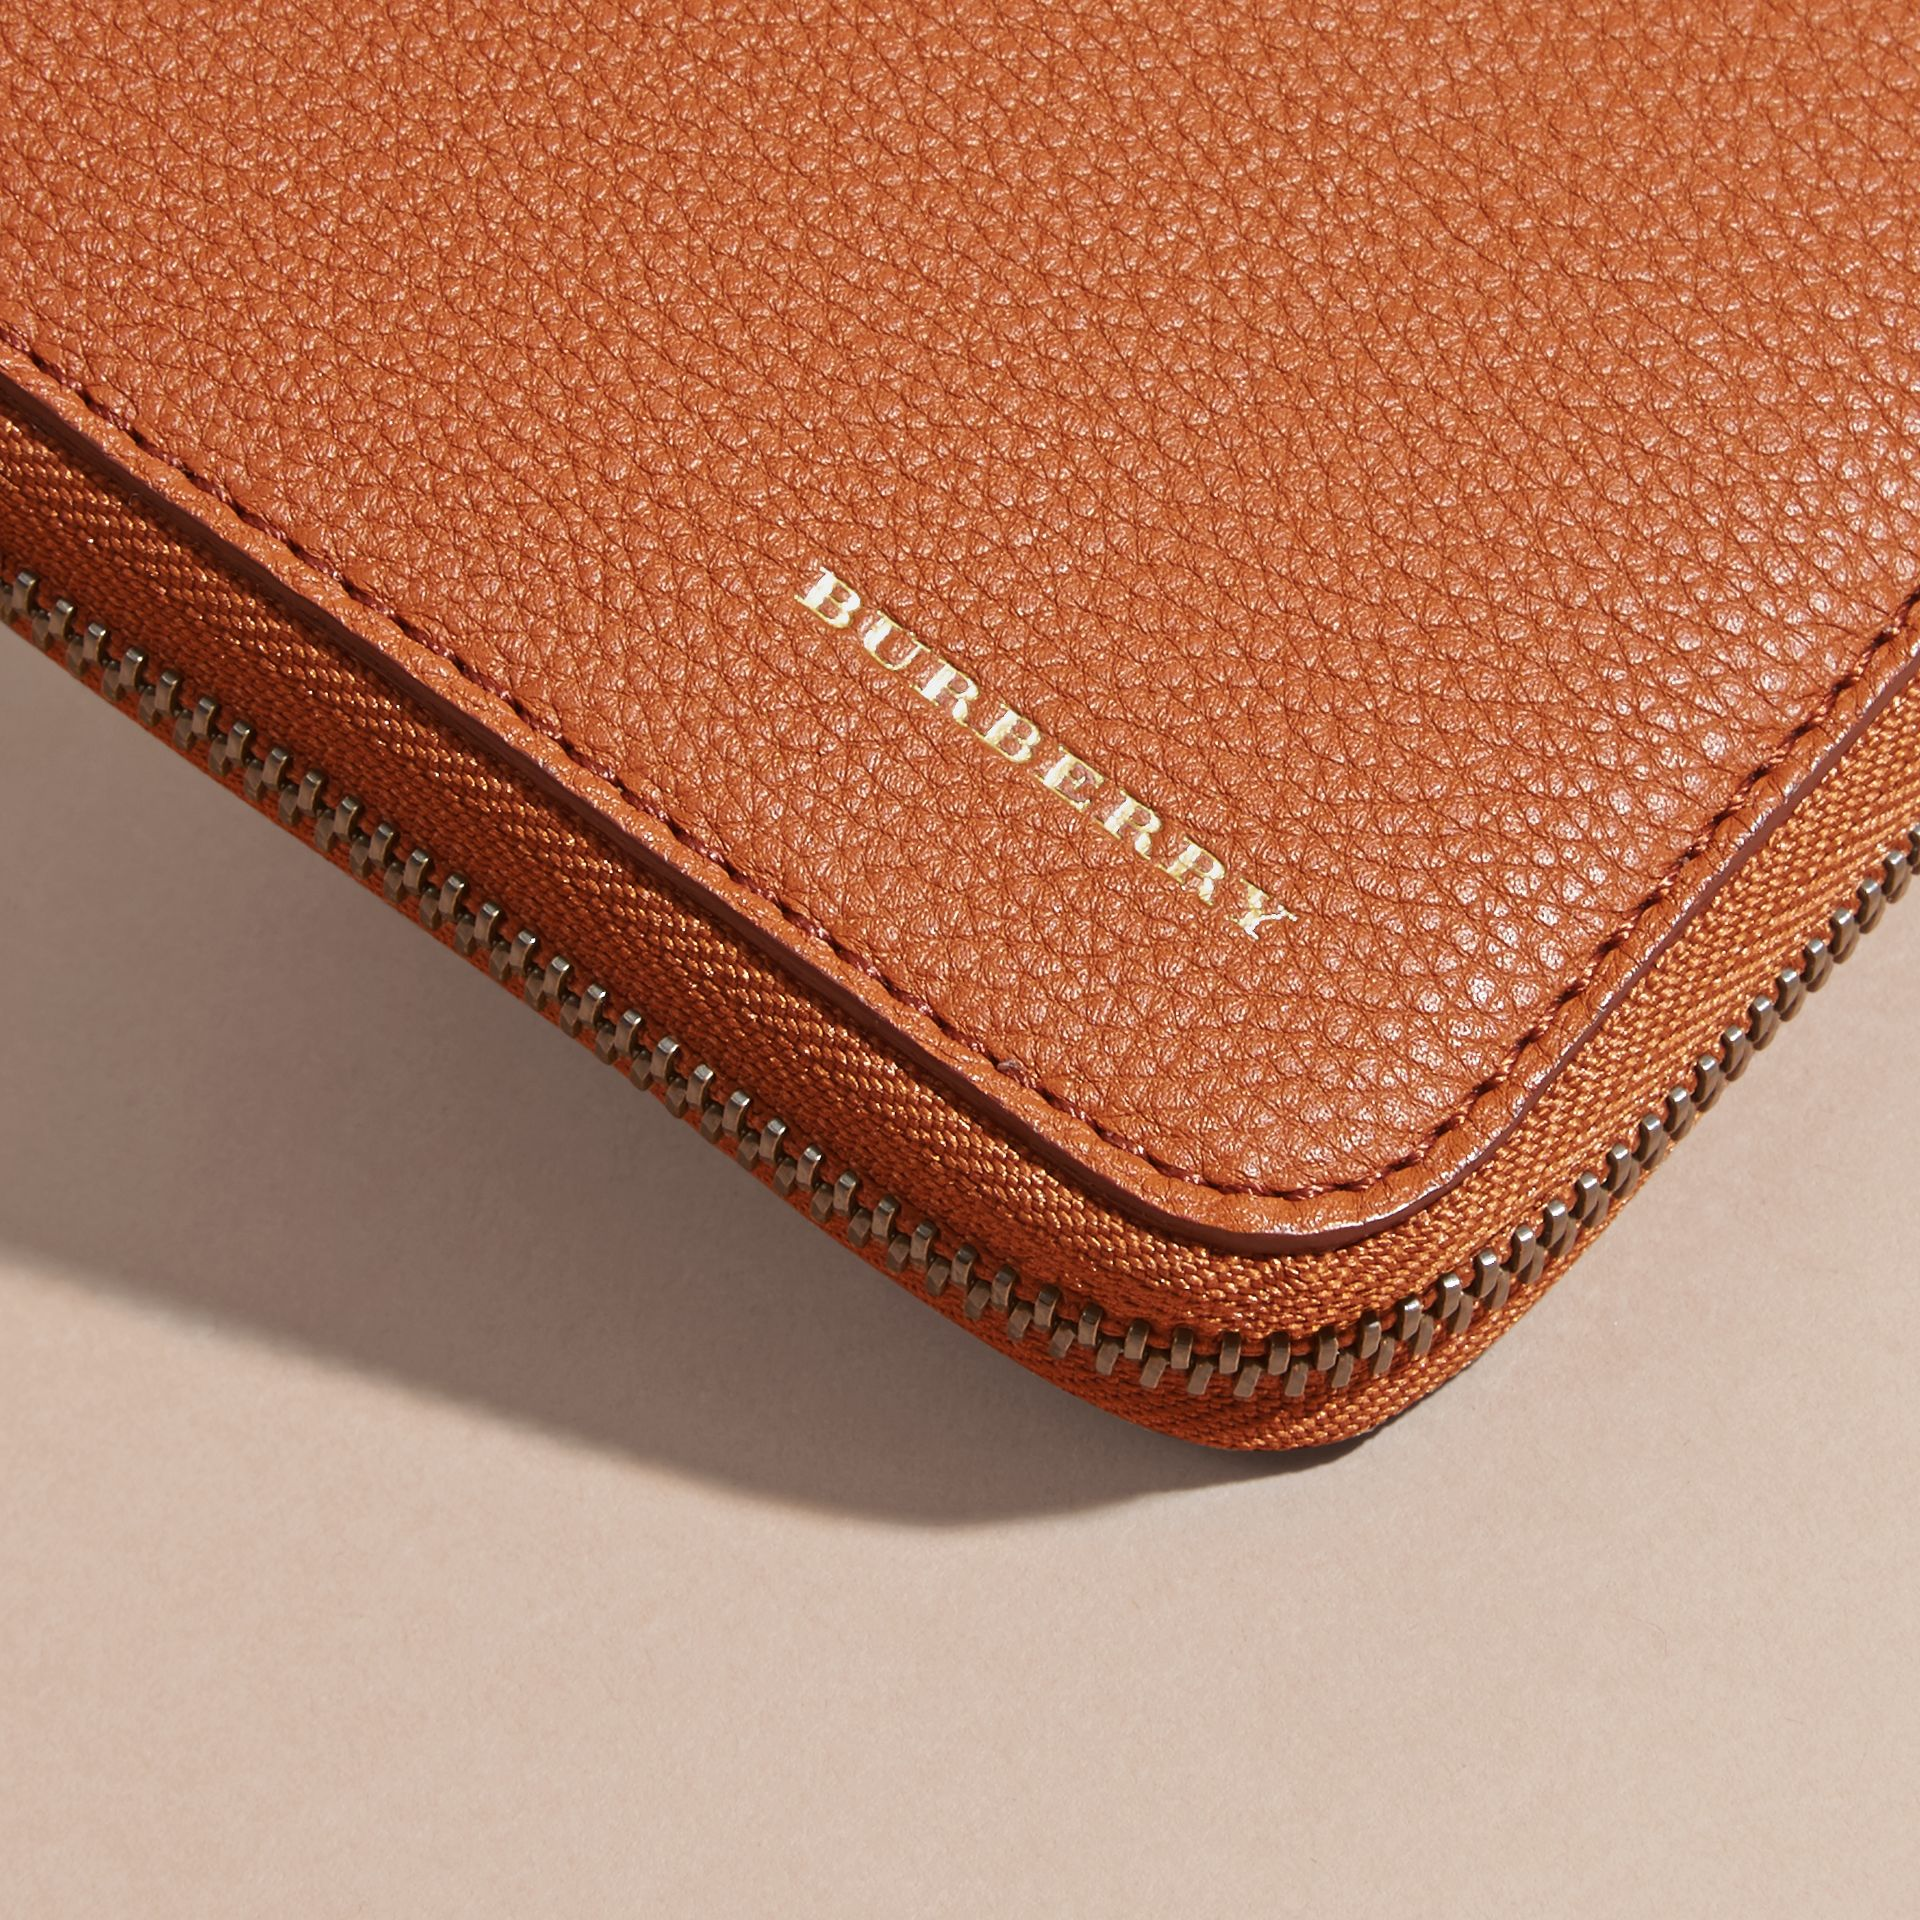 House Check and Grainy Leather Ziparound Wallet Russet - gallery image 5